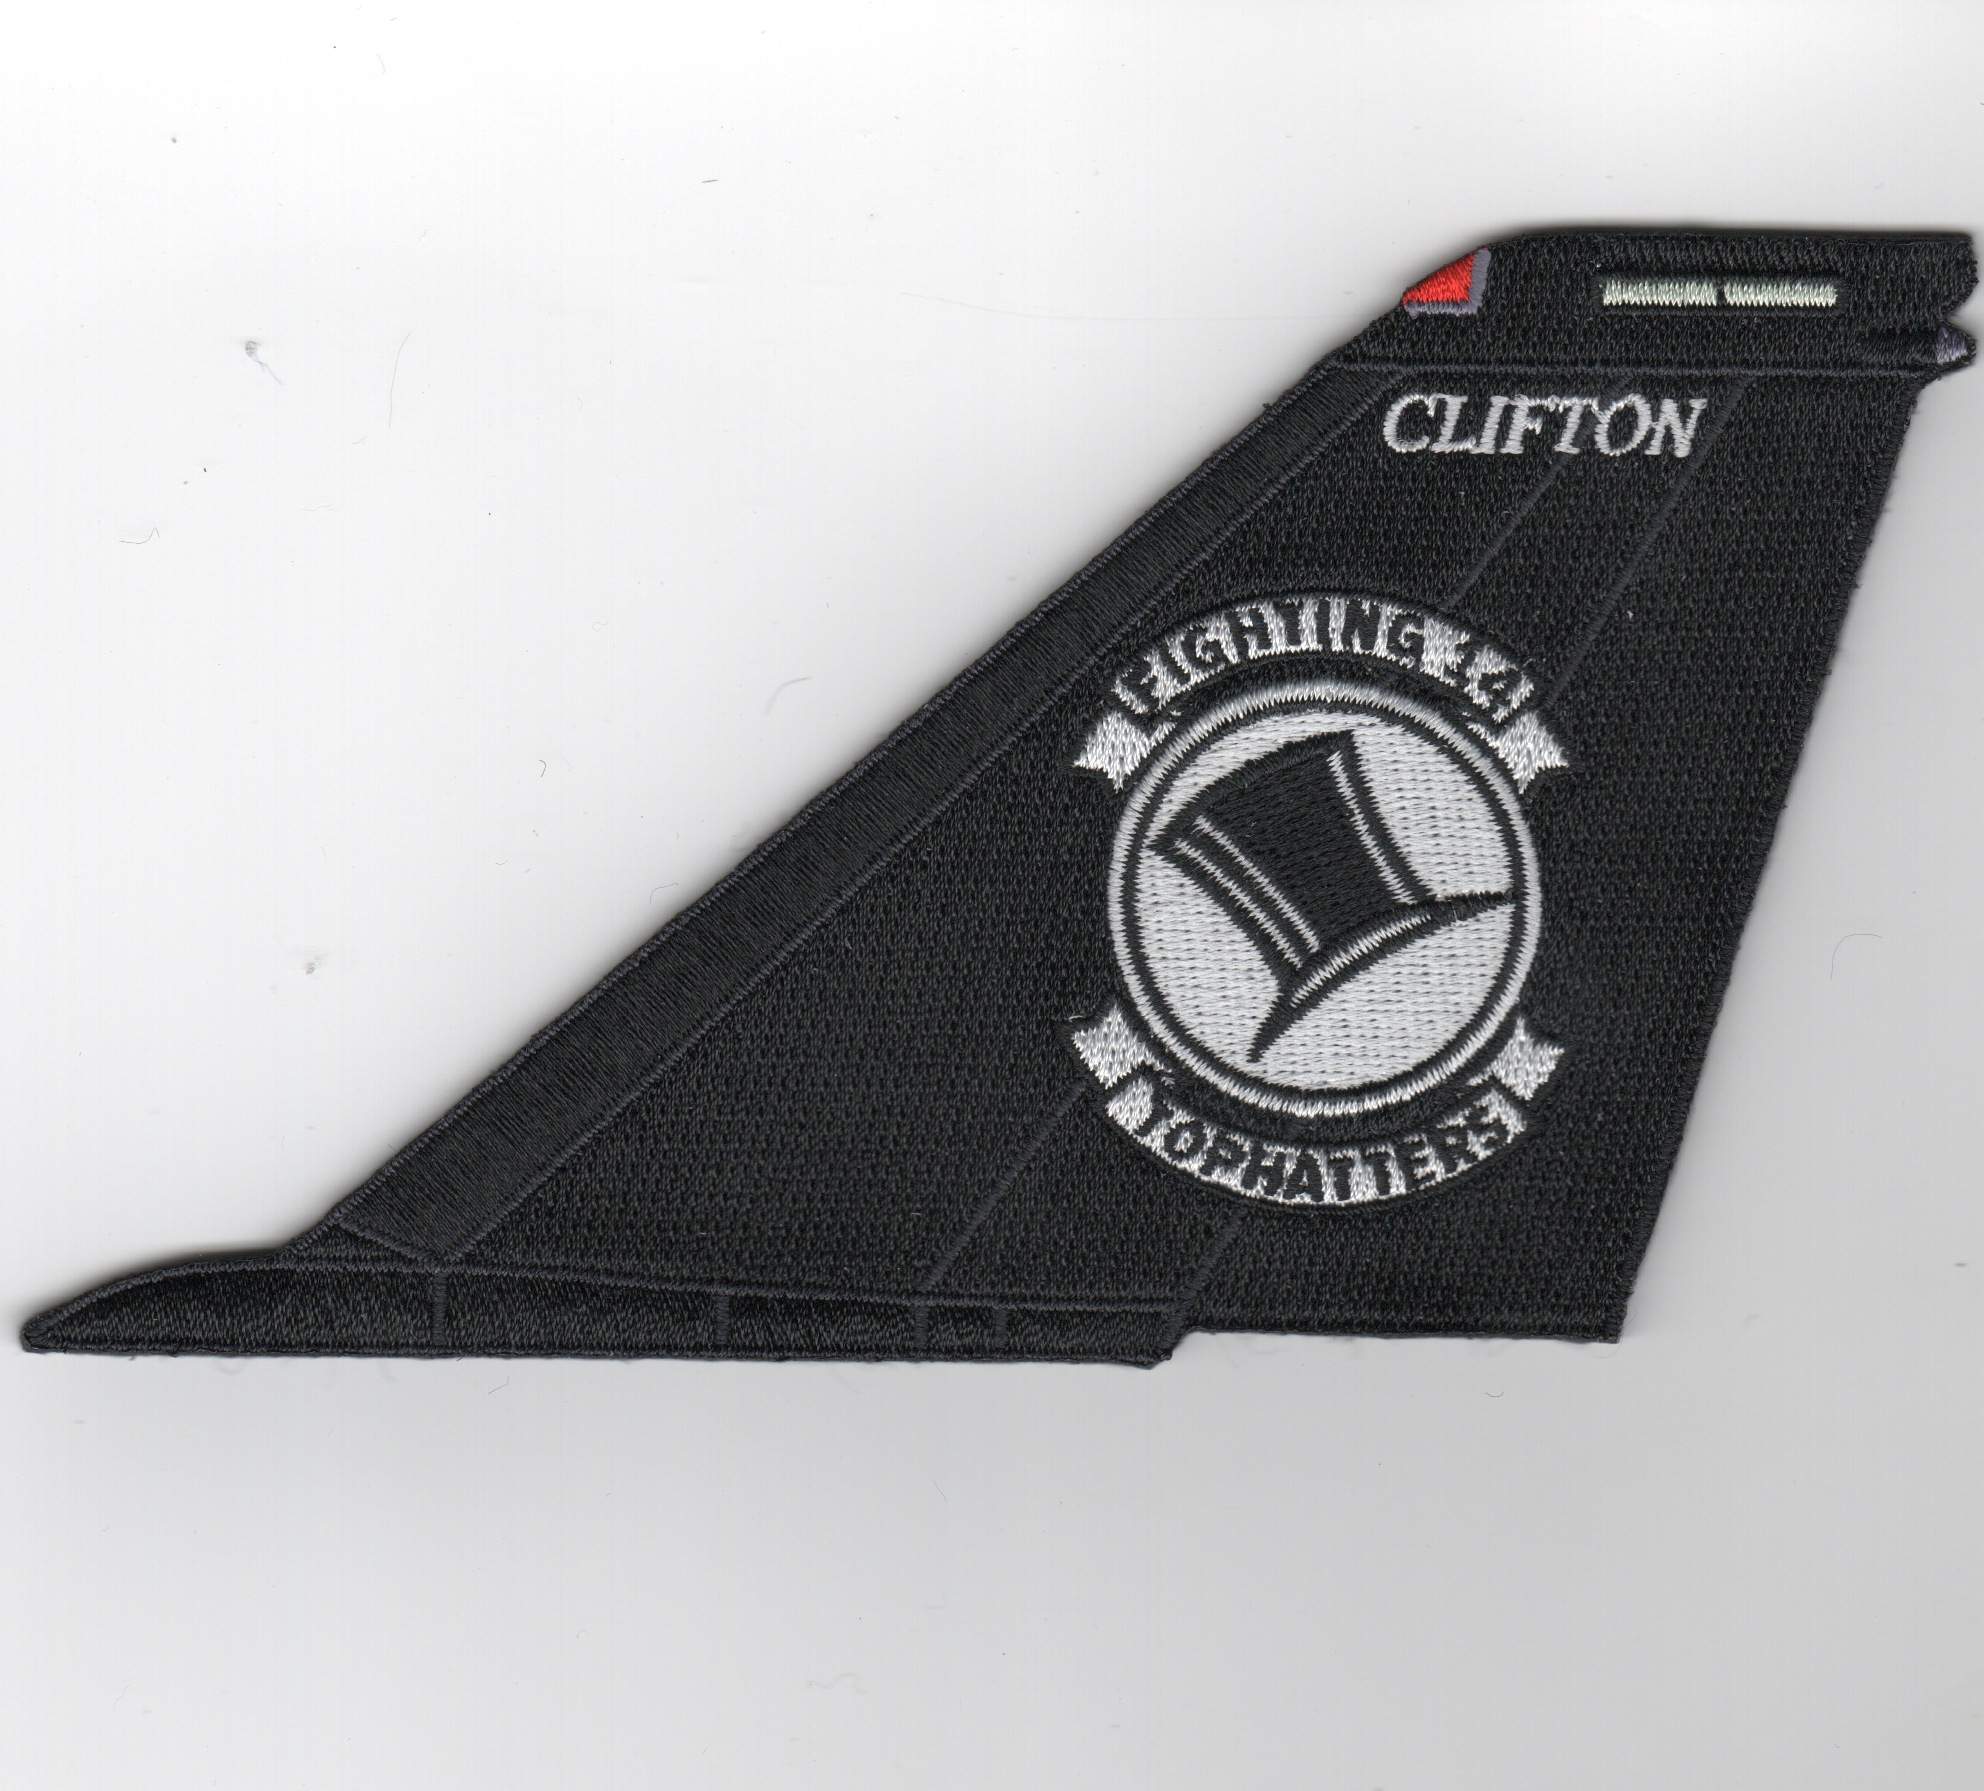 VF-14 F-14 Tomcat Tail Fin (Black/No Text)